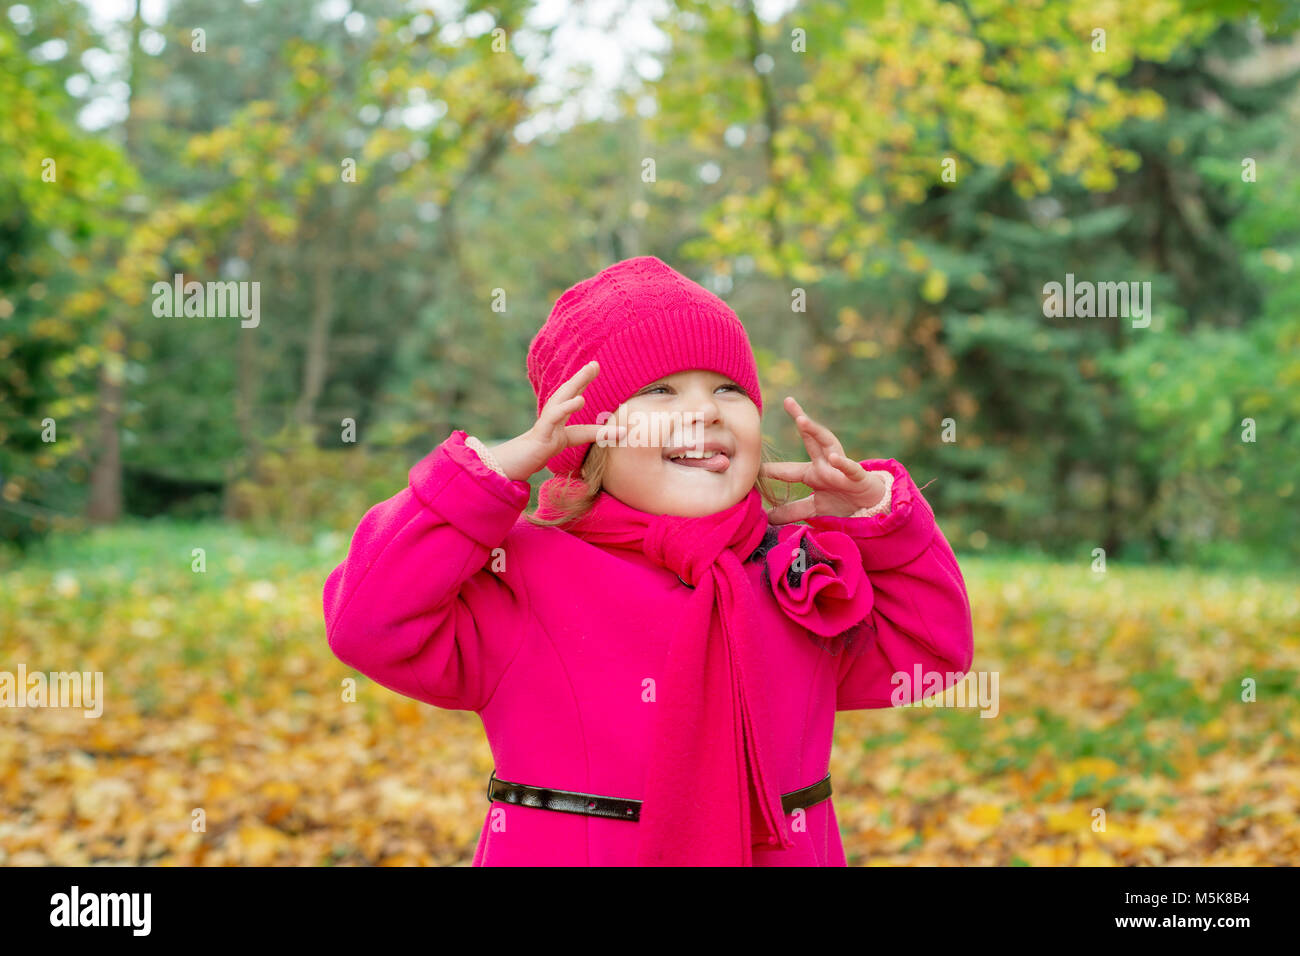 Girl in pink coat monkeys and shows tongue in autumn park - Stock Image